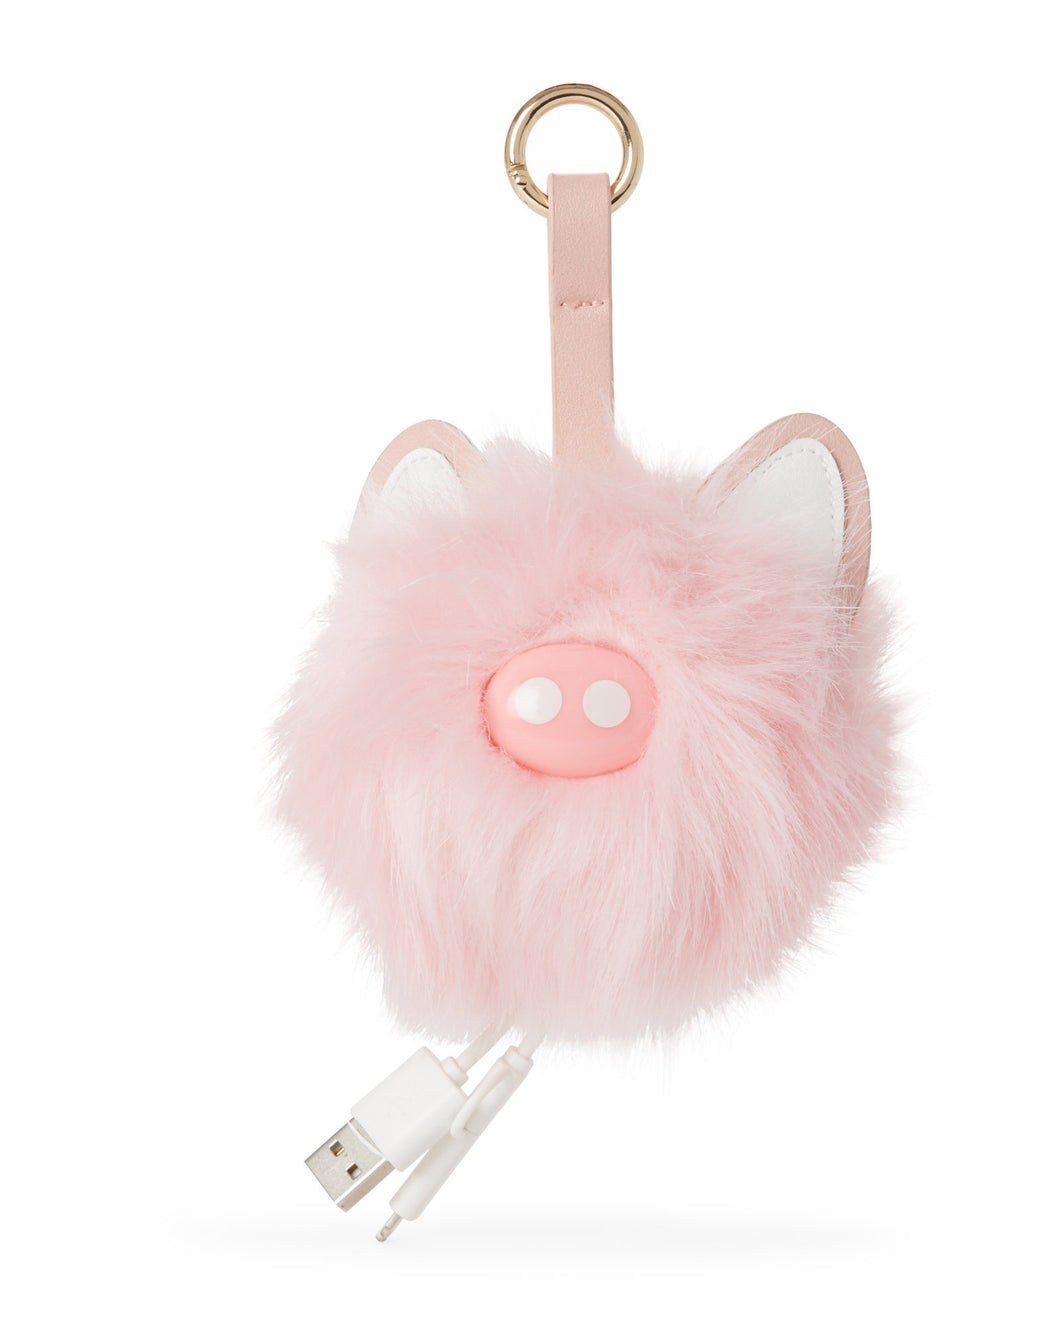 JADE & DEER Charging Power Bank Pom Bag Charm